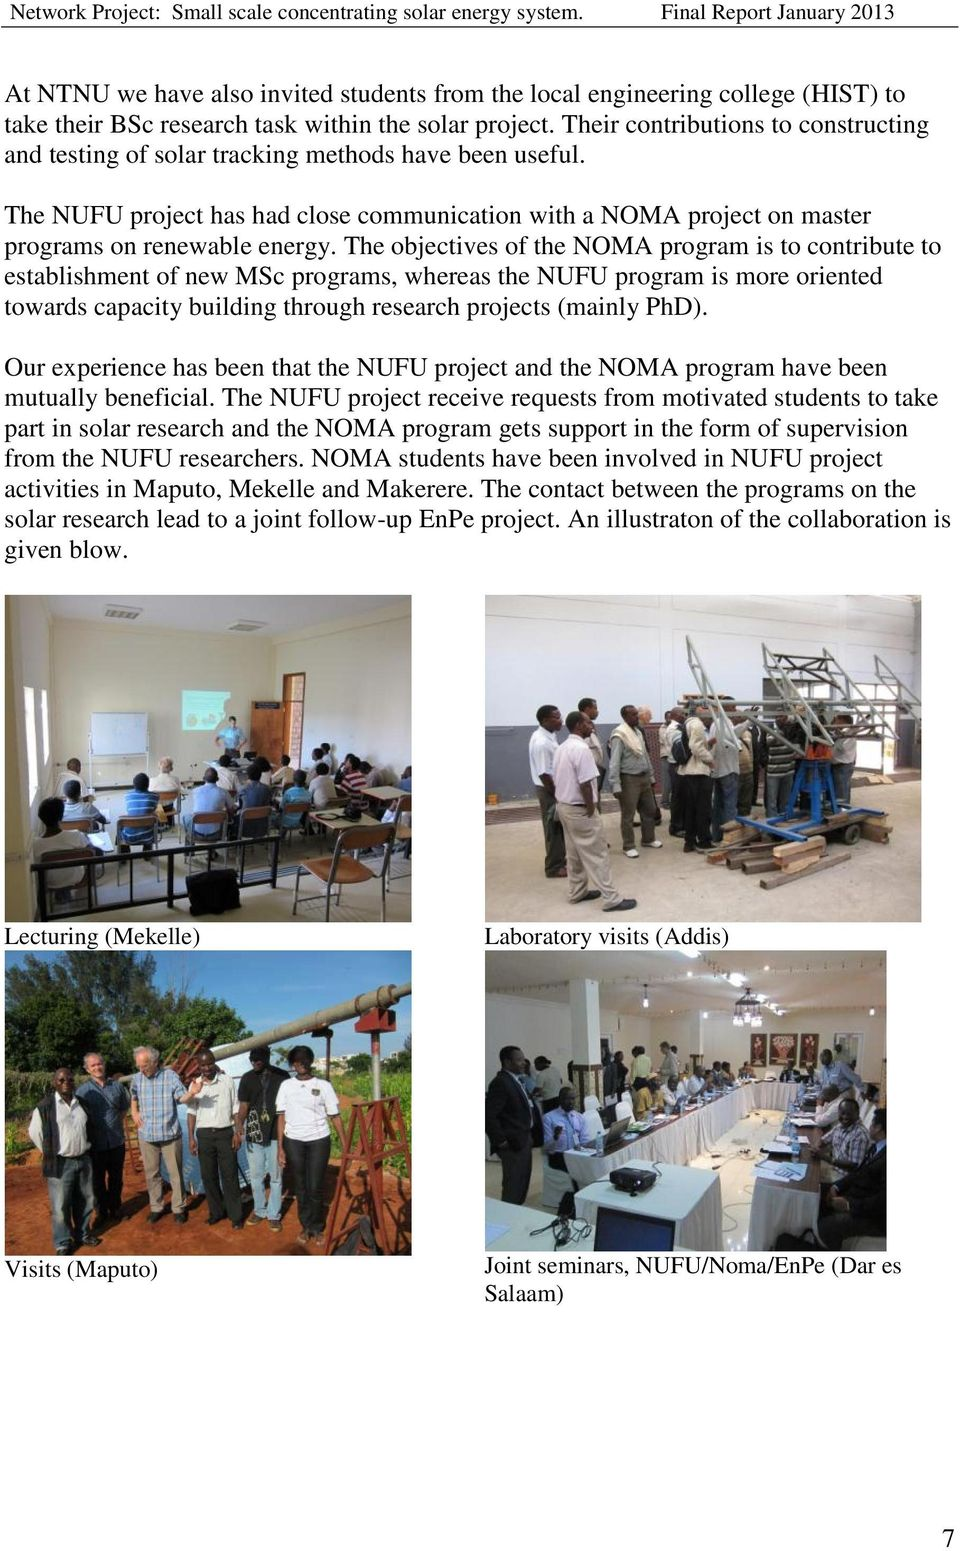 The objectives of the NOMA program is to contribute to establishment of new MSc programs, whereas the NUFU program is more oriented towards capacity building through research projects (mainly PhD).